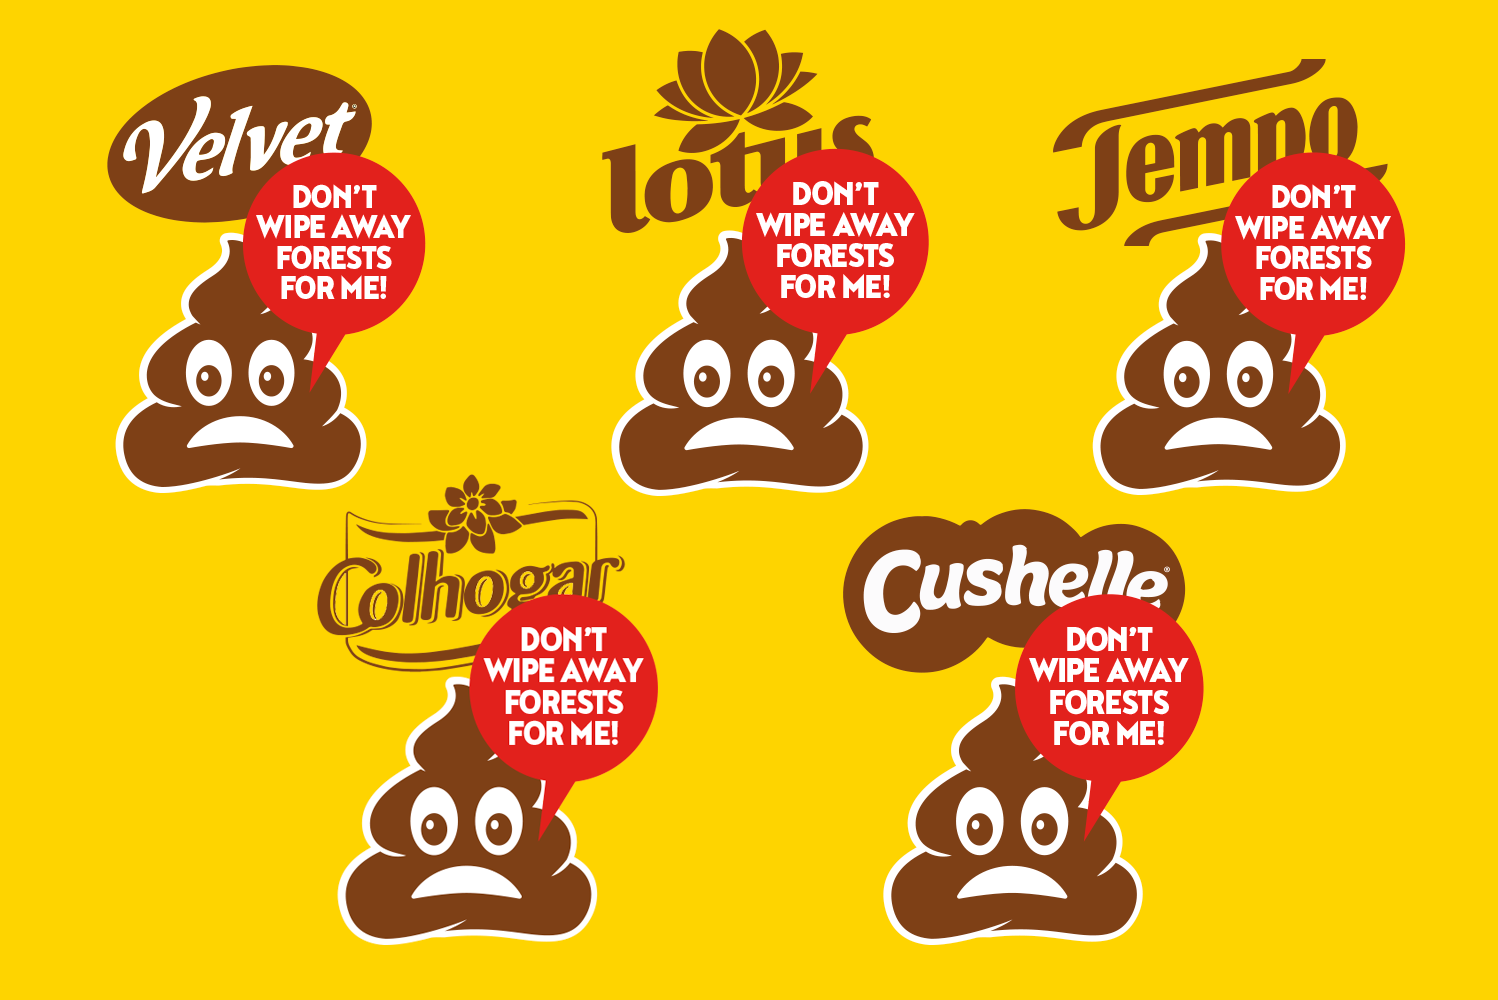 Greenpeace_Forests_Essity_Poop_Logos.png